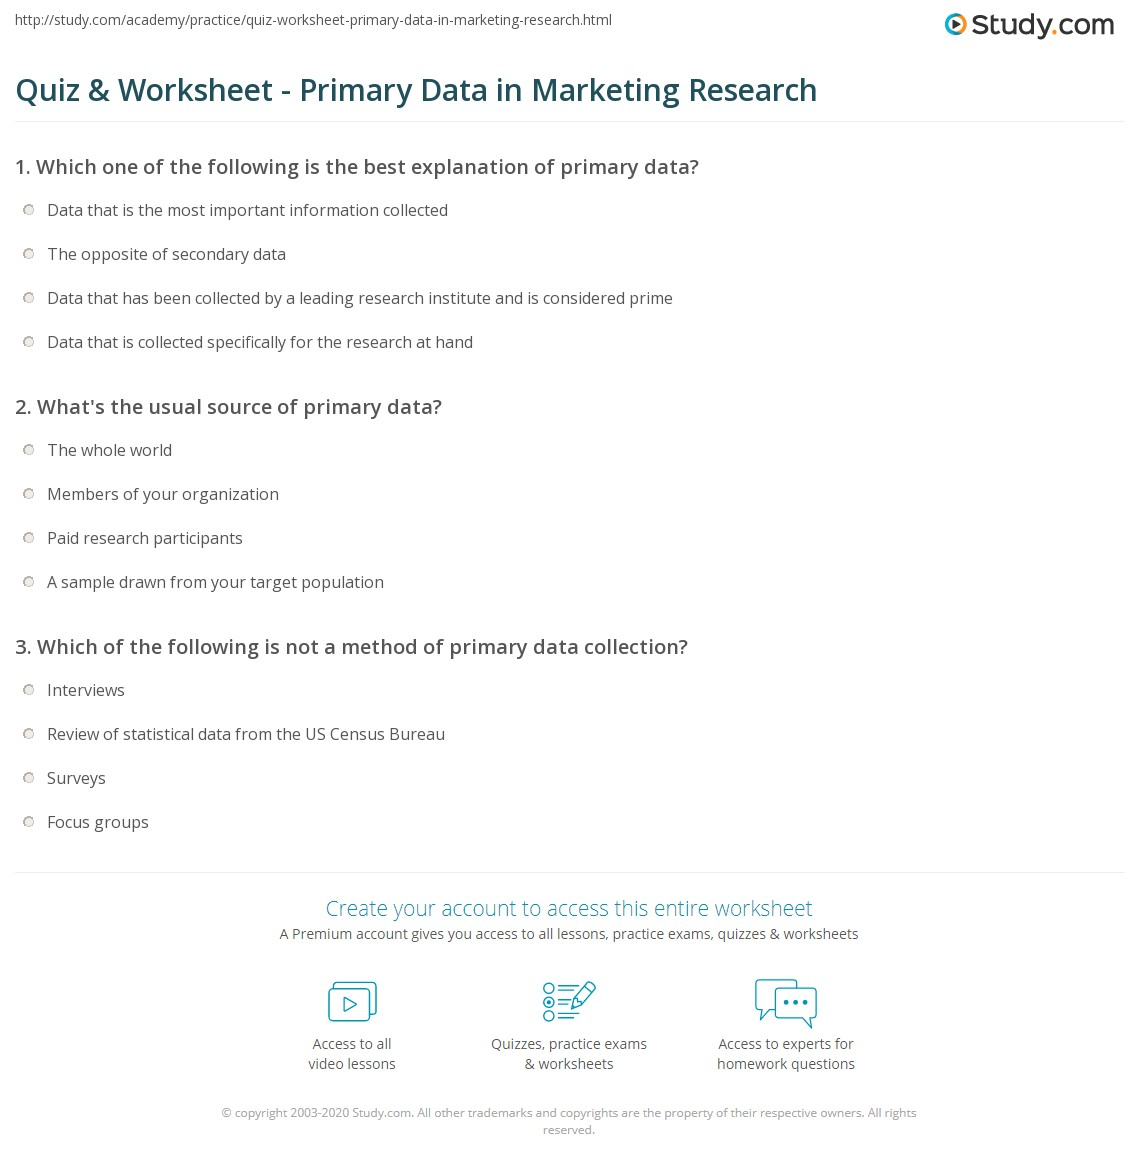 quiz & worksheet - primary data in marketing research | study